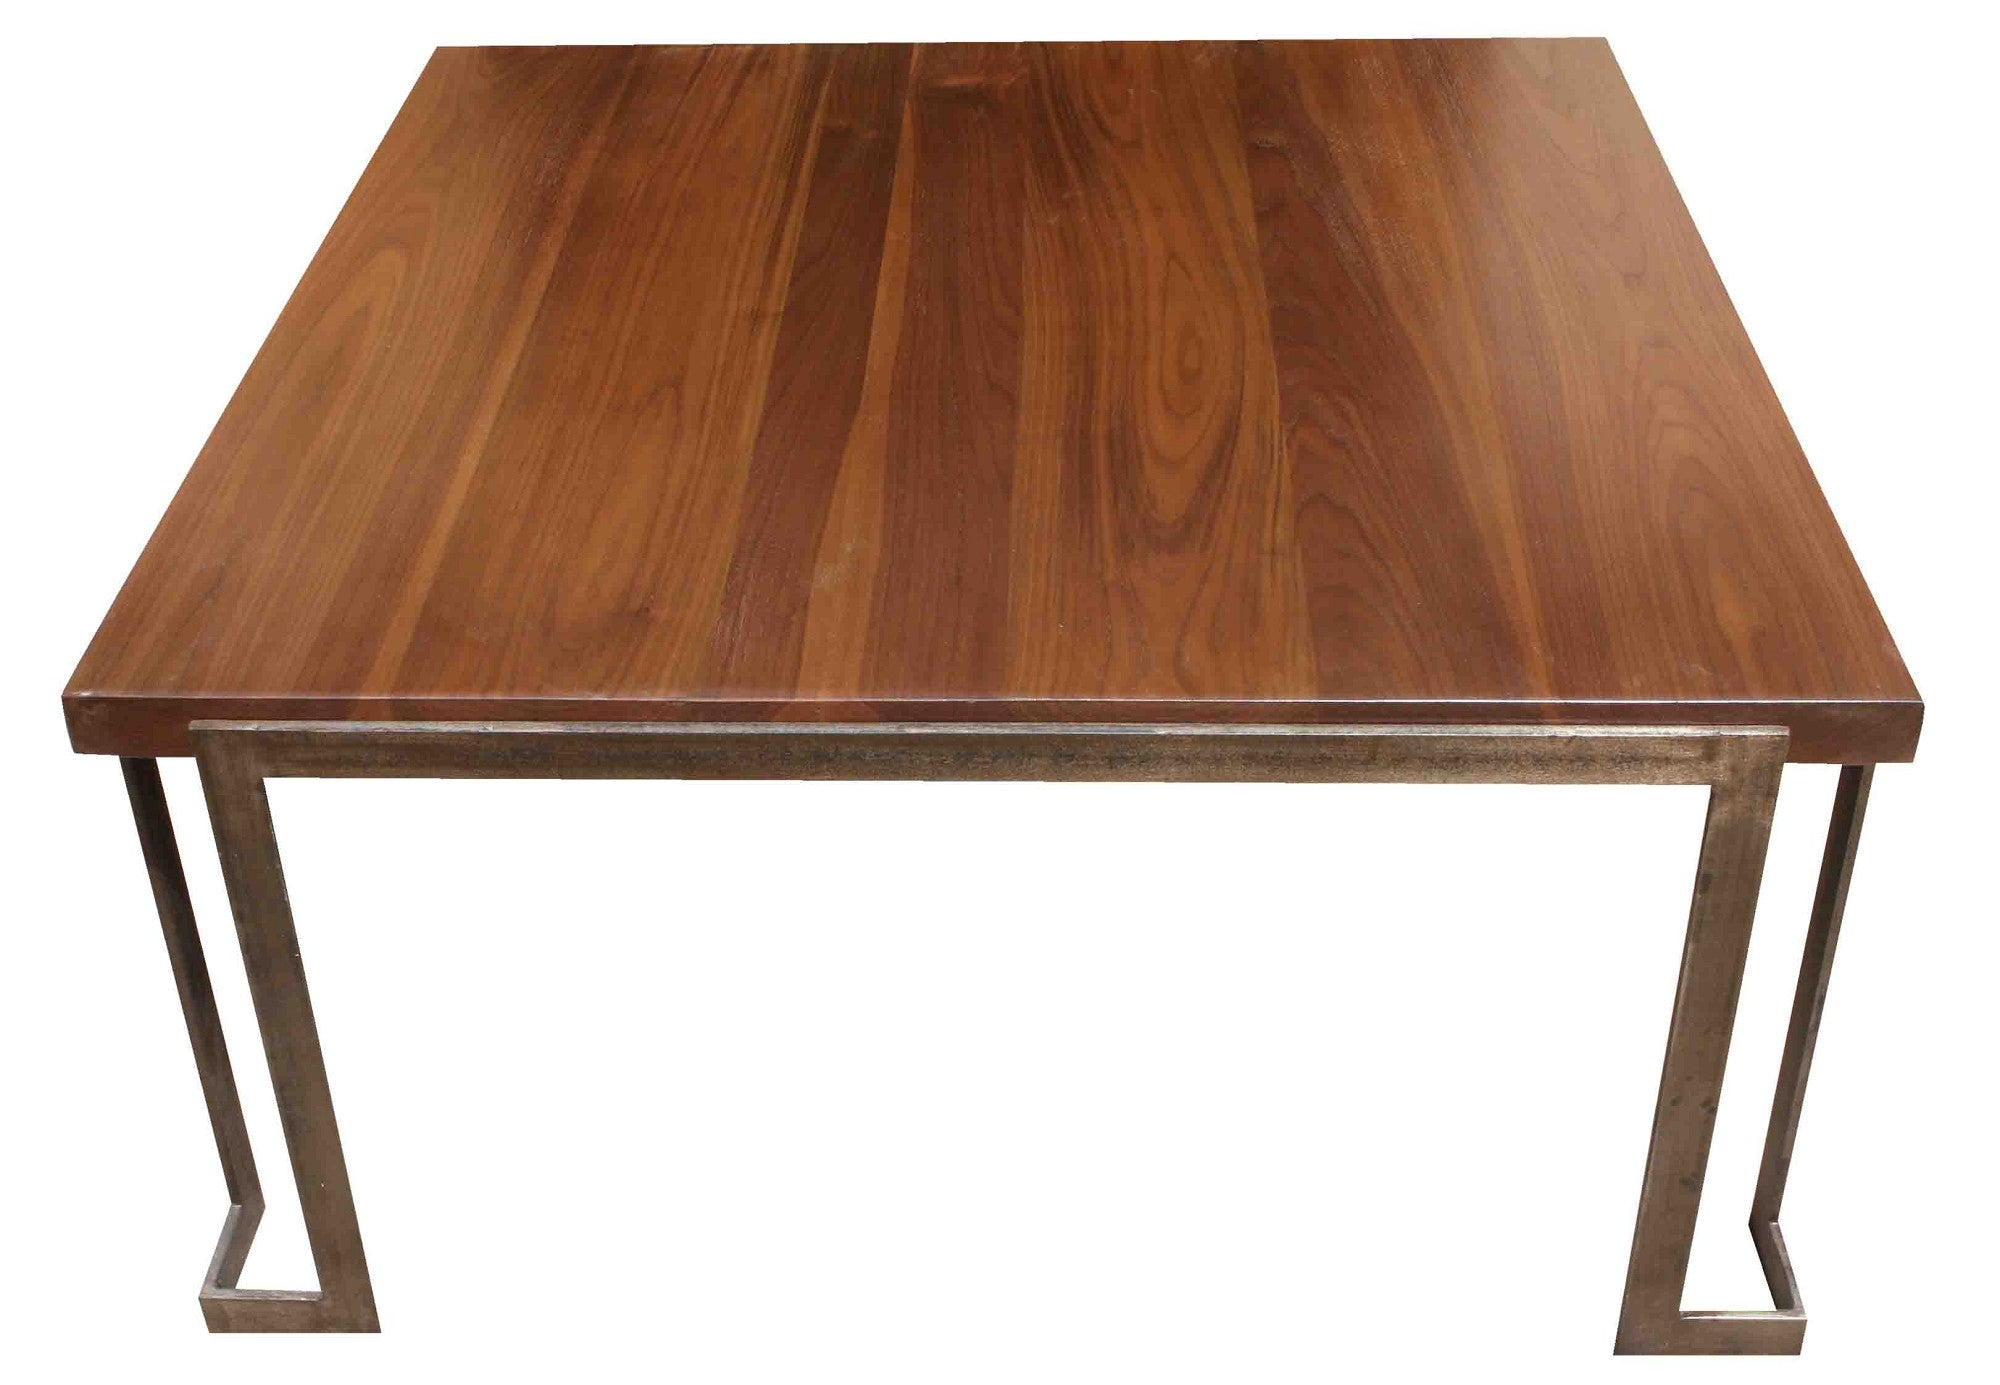 Modern Metal And Wood Coffee Table Mortise Tenon